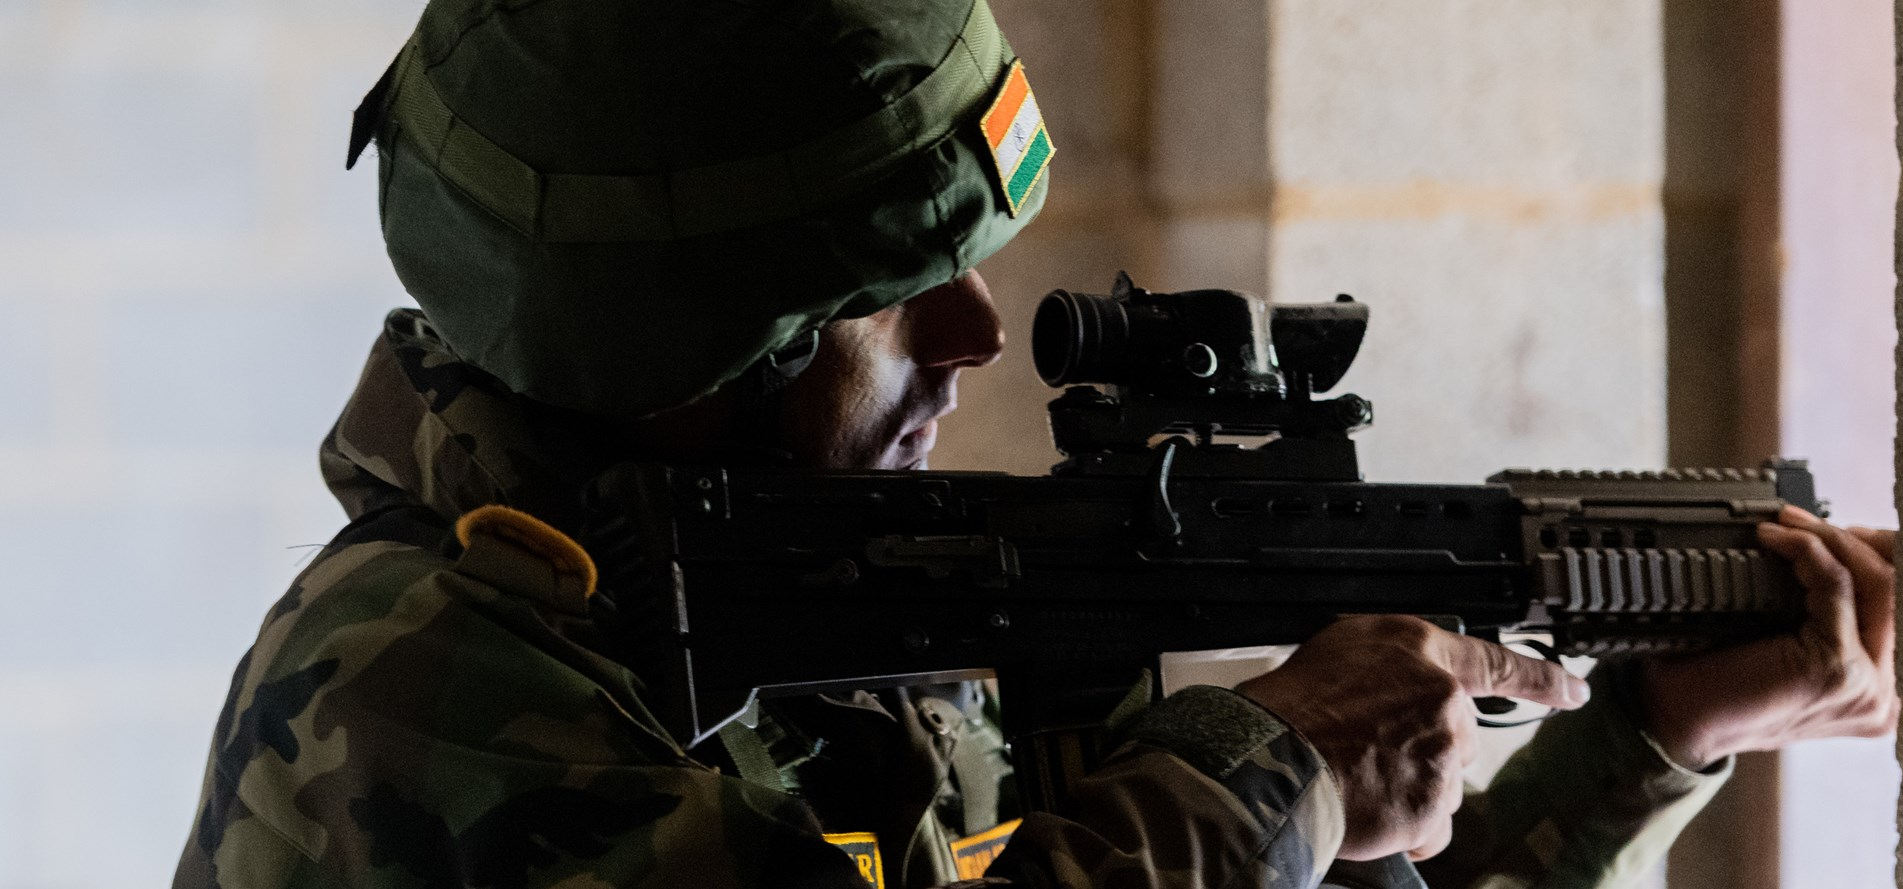 APOSEA-2020-014-1 Rifles and the Indian Army-RK-087.JPG